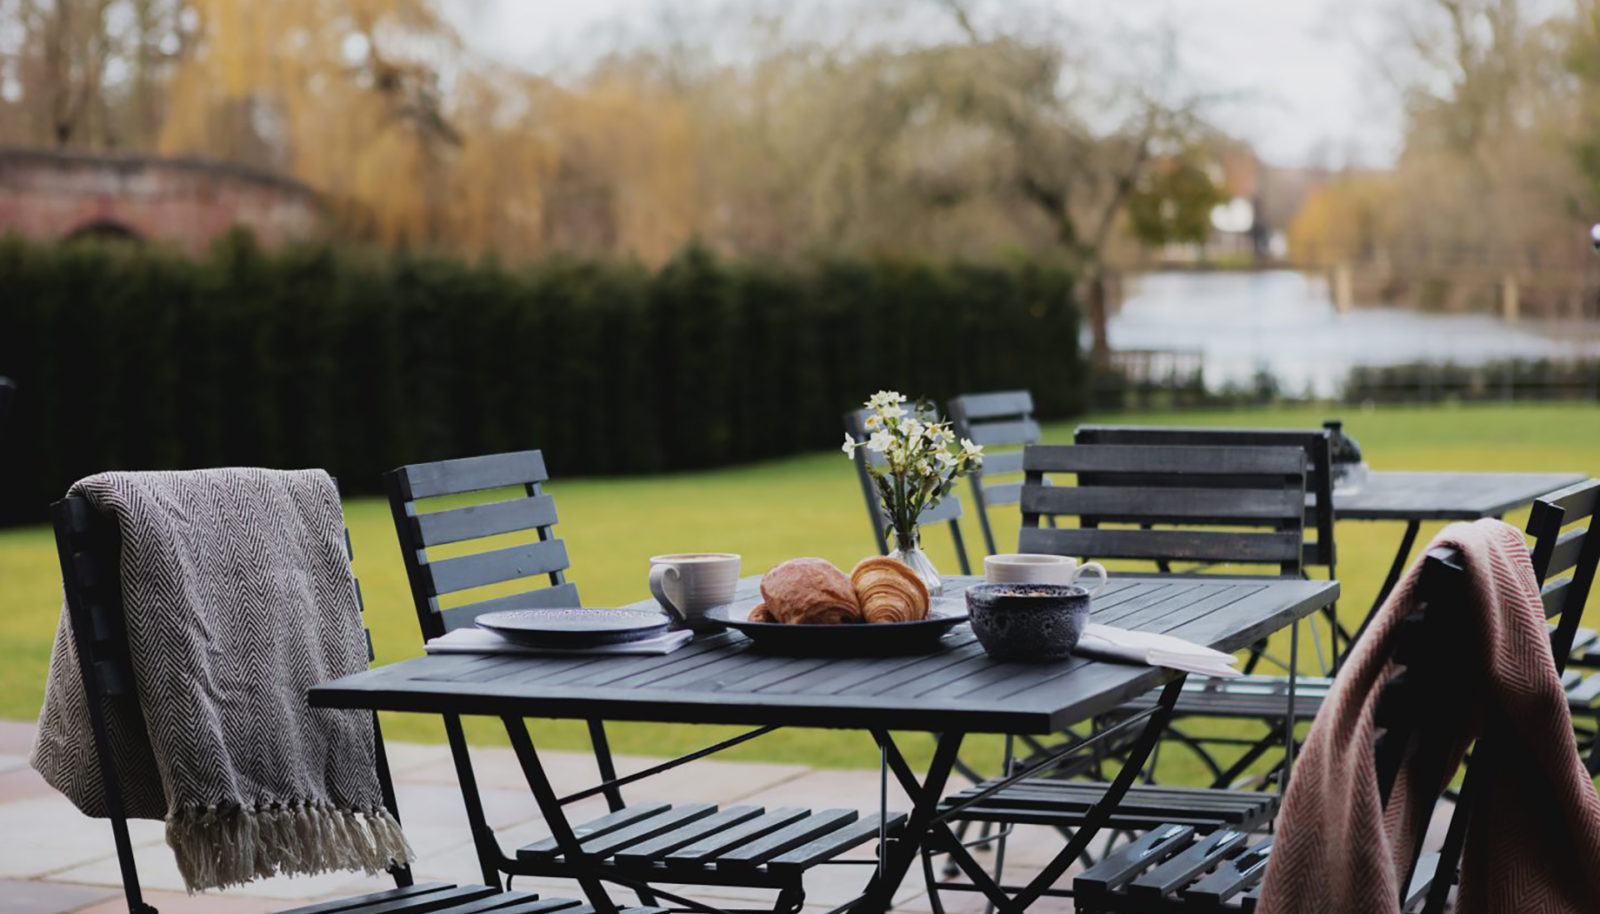 tables with blanket and pastries and coffee overlooking lawn and river